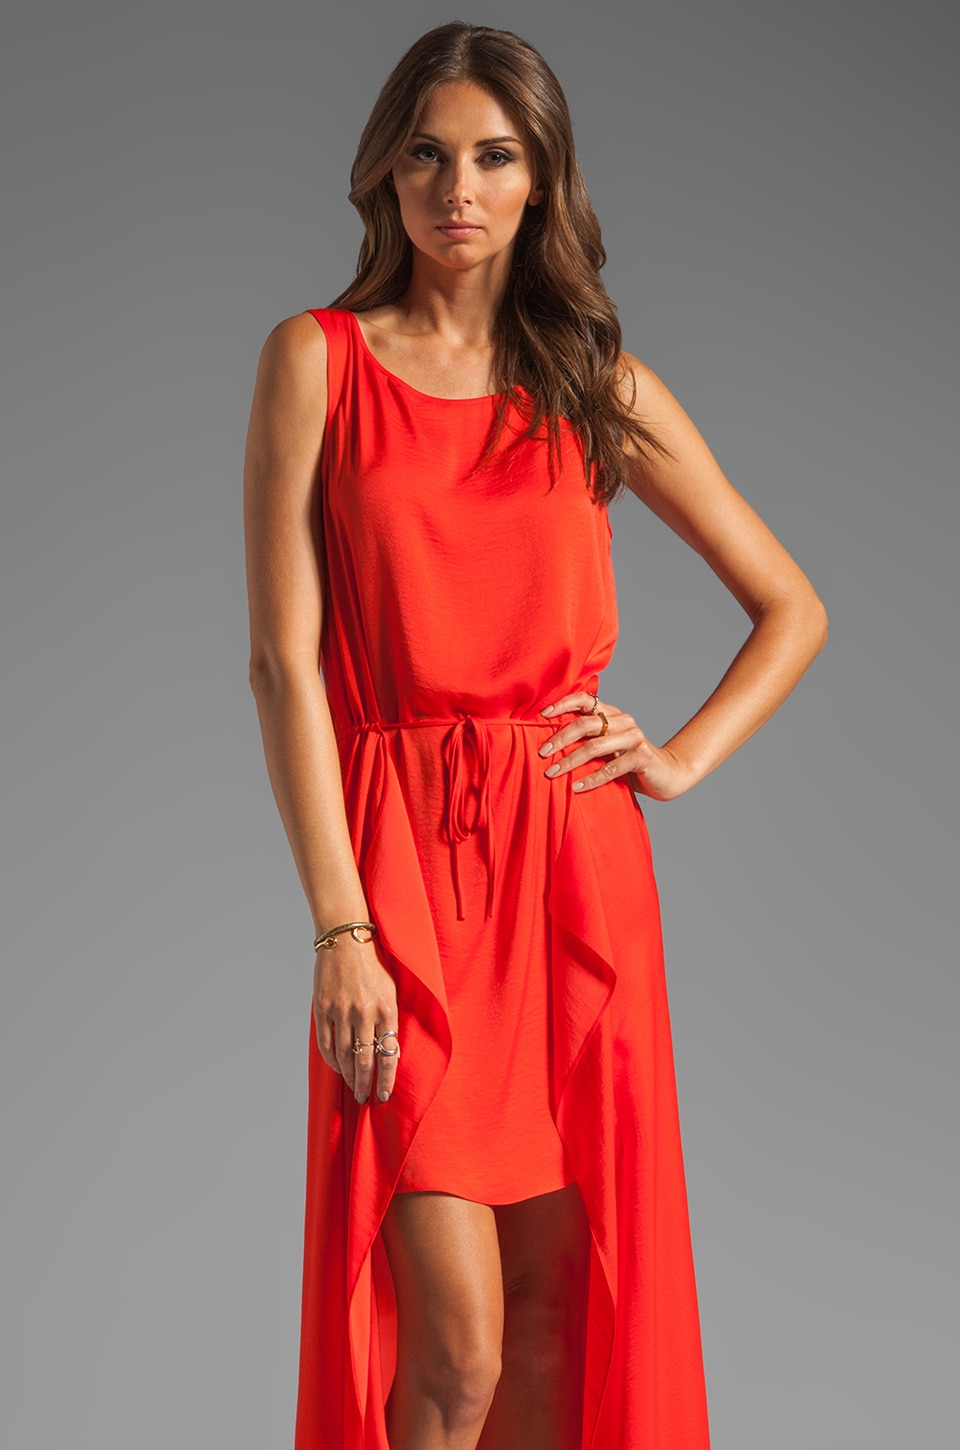 BCBGMAXAZRIA Asymmetric Tank Dress in Bright Poppy